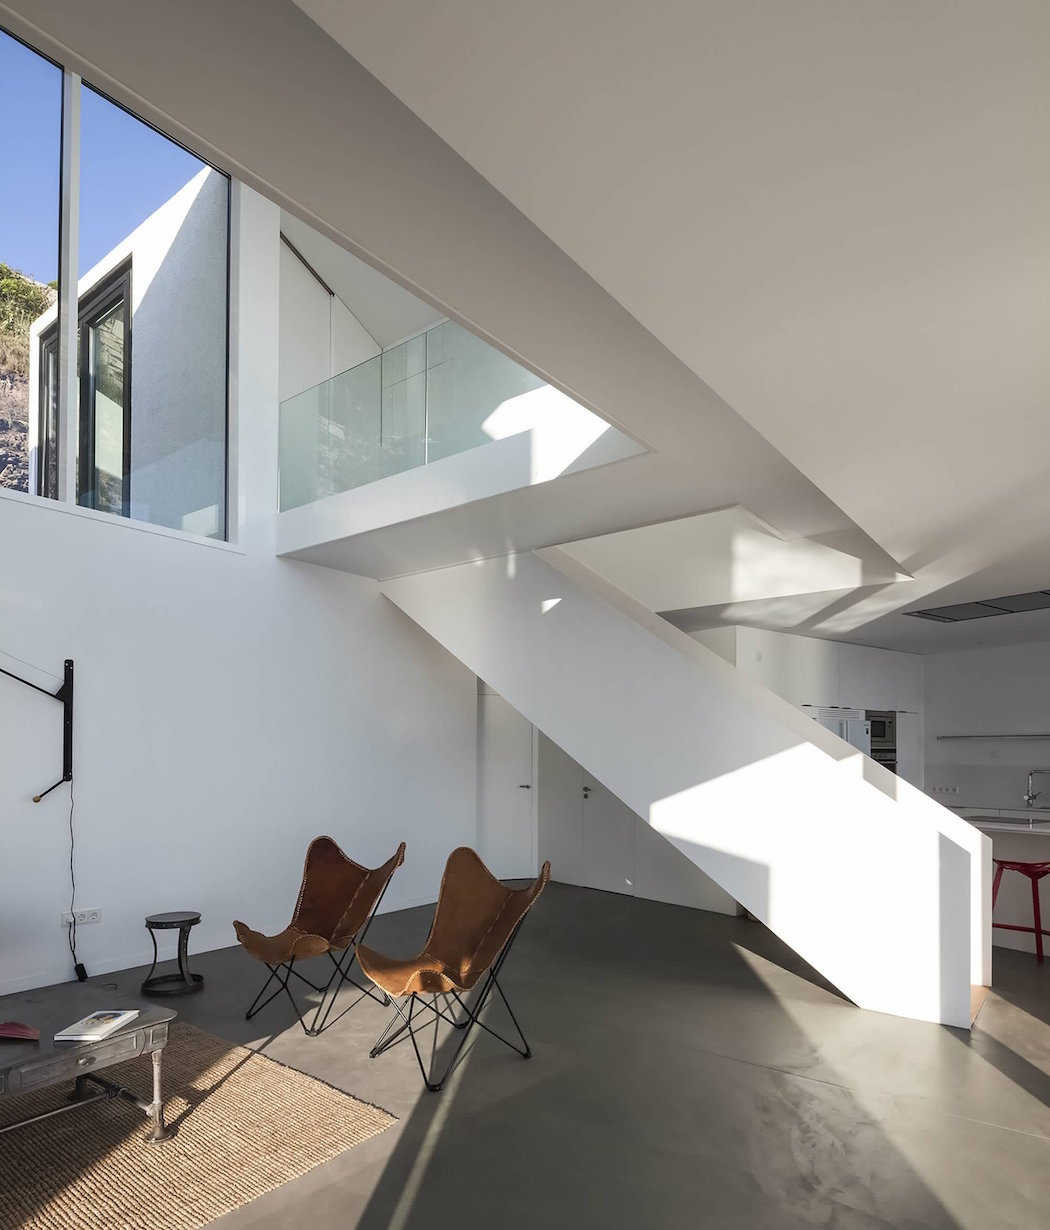 Sunflower House : Cadaval & Solà-Morales 5